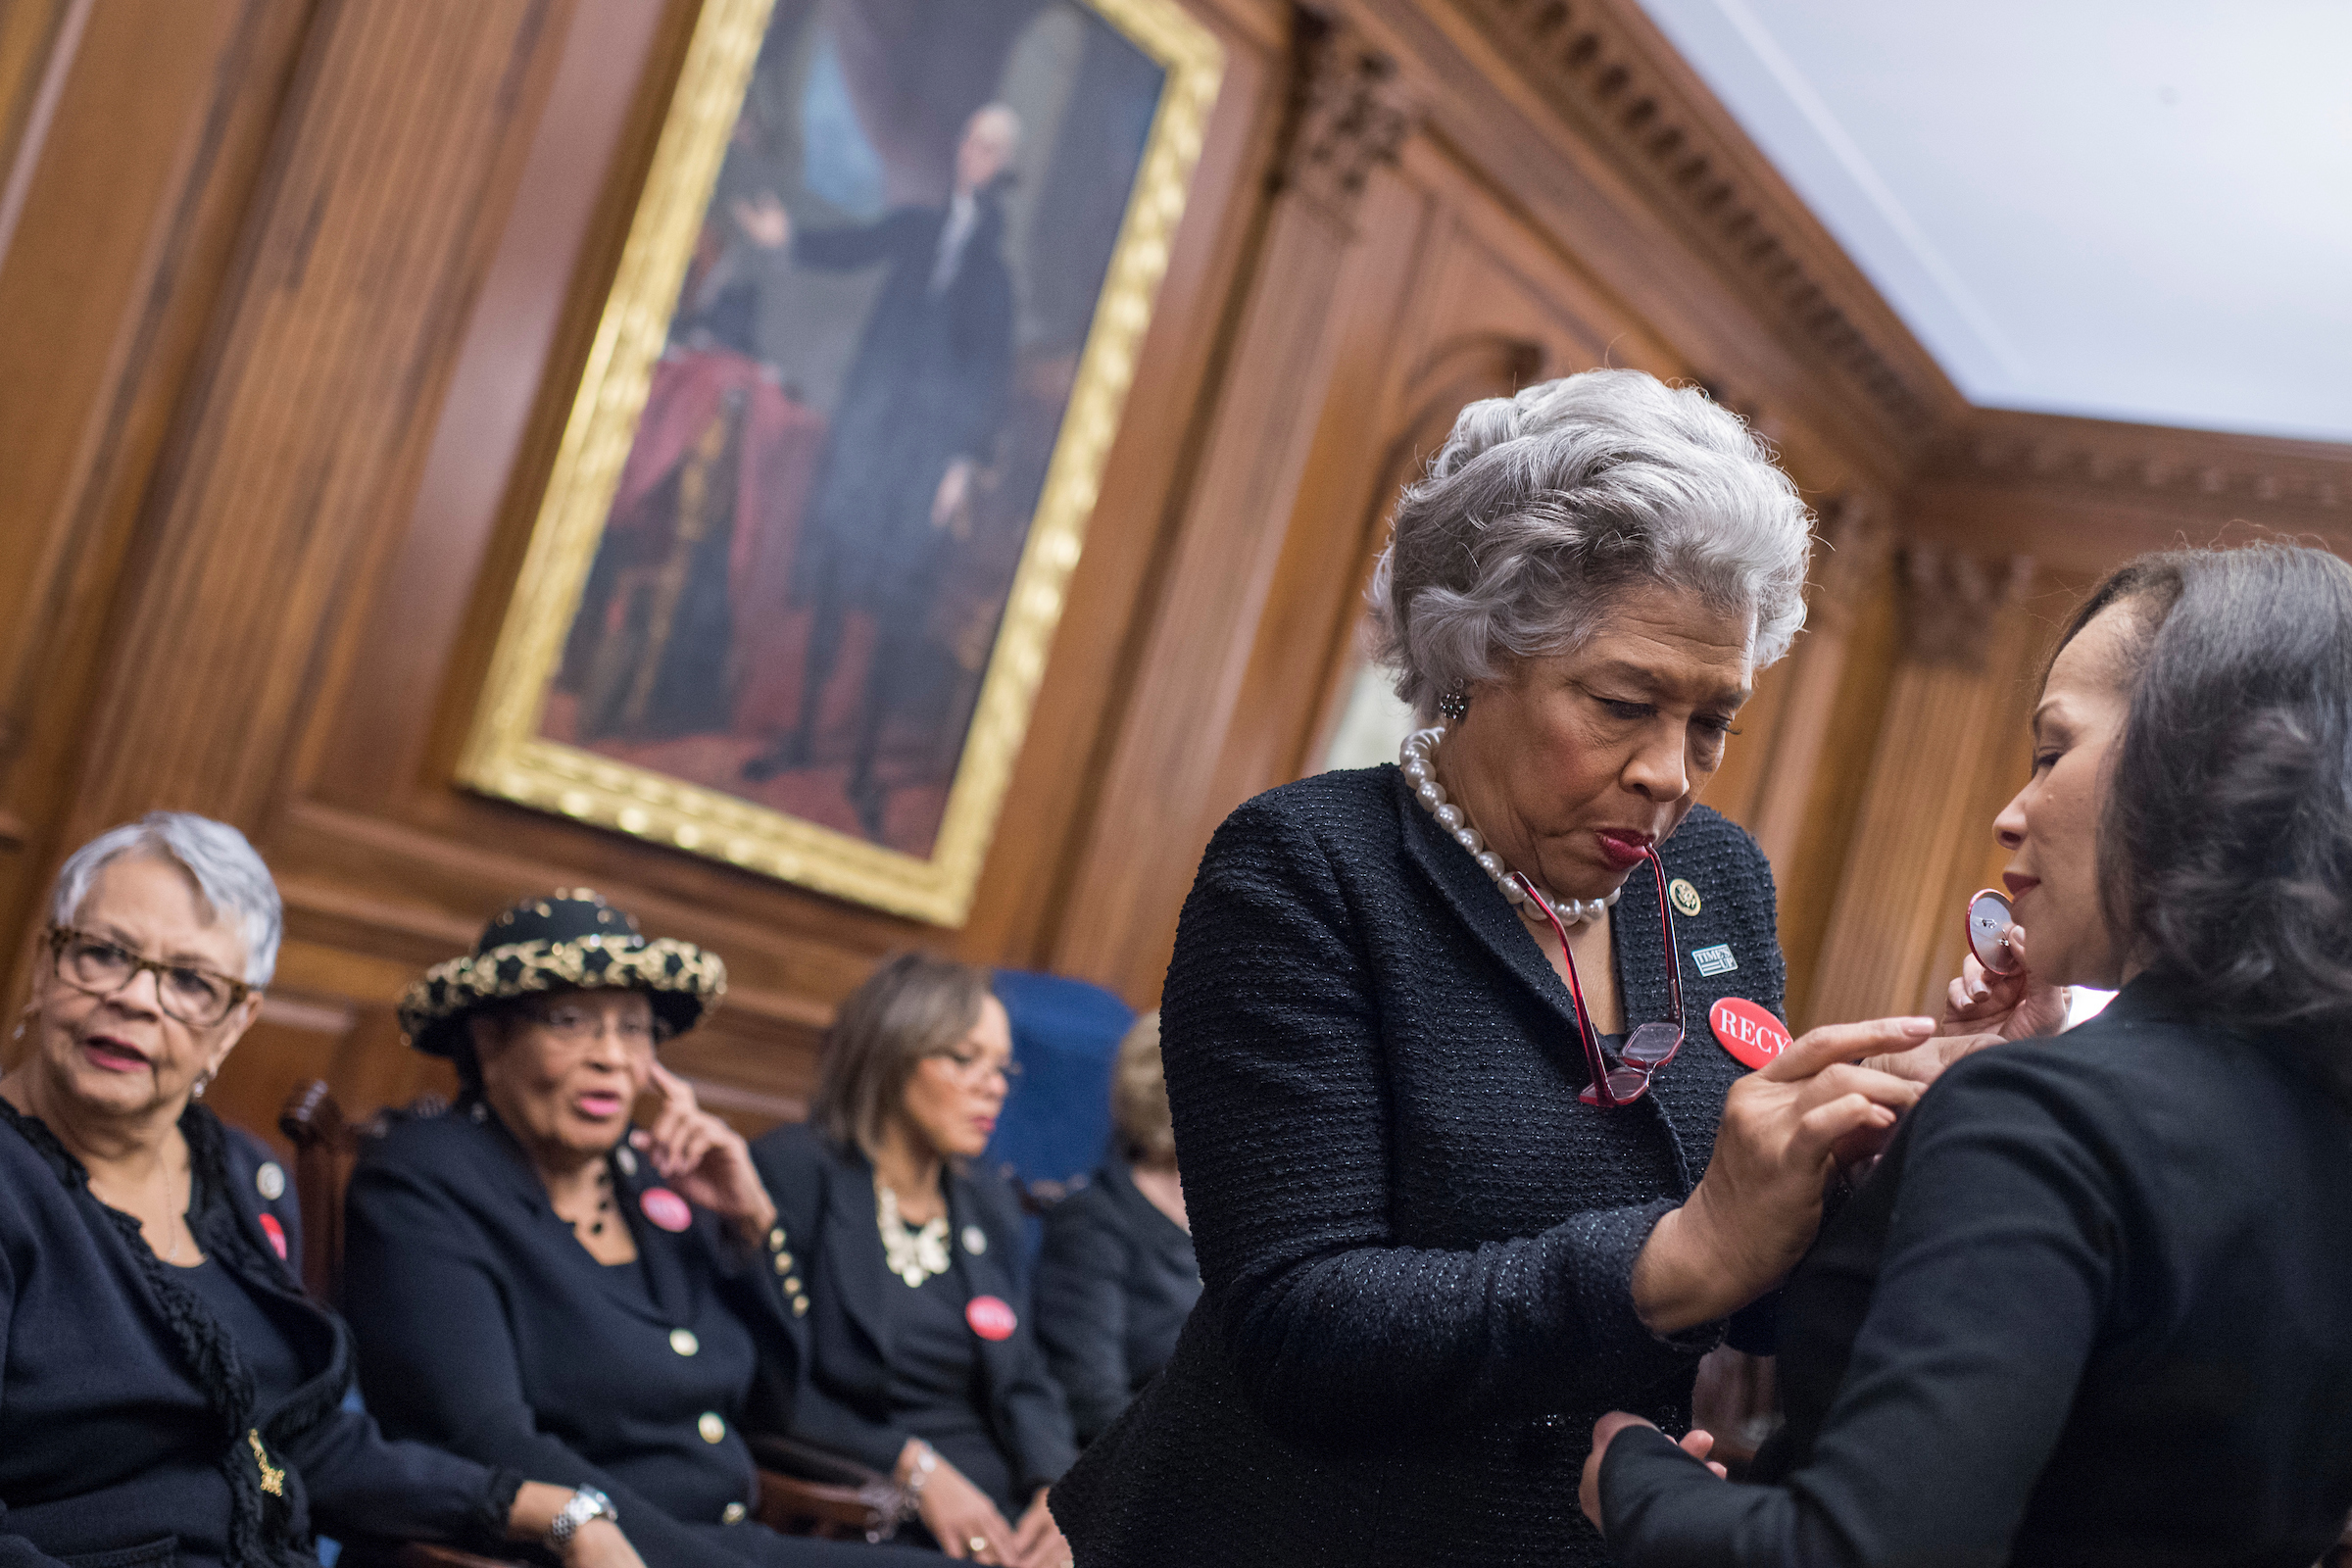 From left, Reps. Bonnie Watson Coleman, D-N.J., Alma Adams, D-N.C., Robin Kelly, D-Ill., Joyce Beatty, D-Ohio, and Lisa Blunt Rochester, D-Del., wear black during a photo op in the Capitol's Rayburn Room to show solidarity with men and women who are speaking out against sexual harassment and discrimination. (Tom Williams/CQ Roll Call)